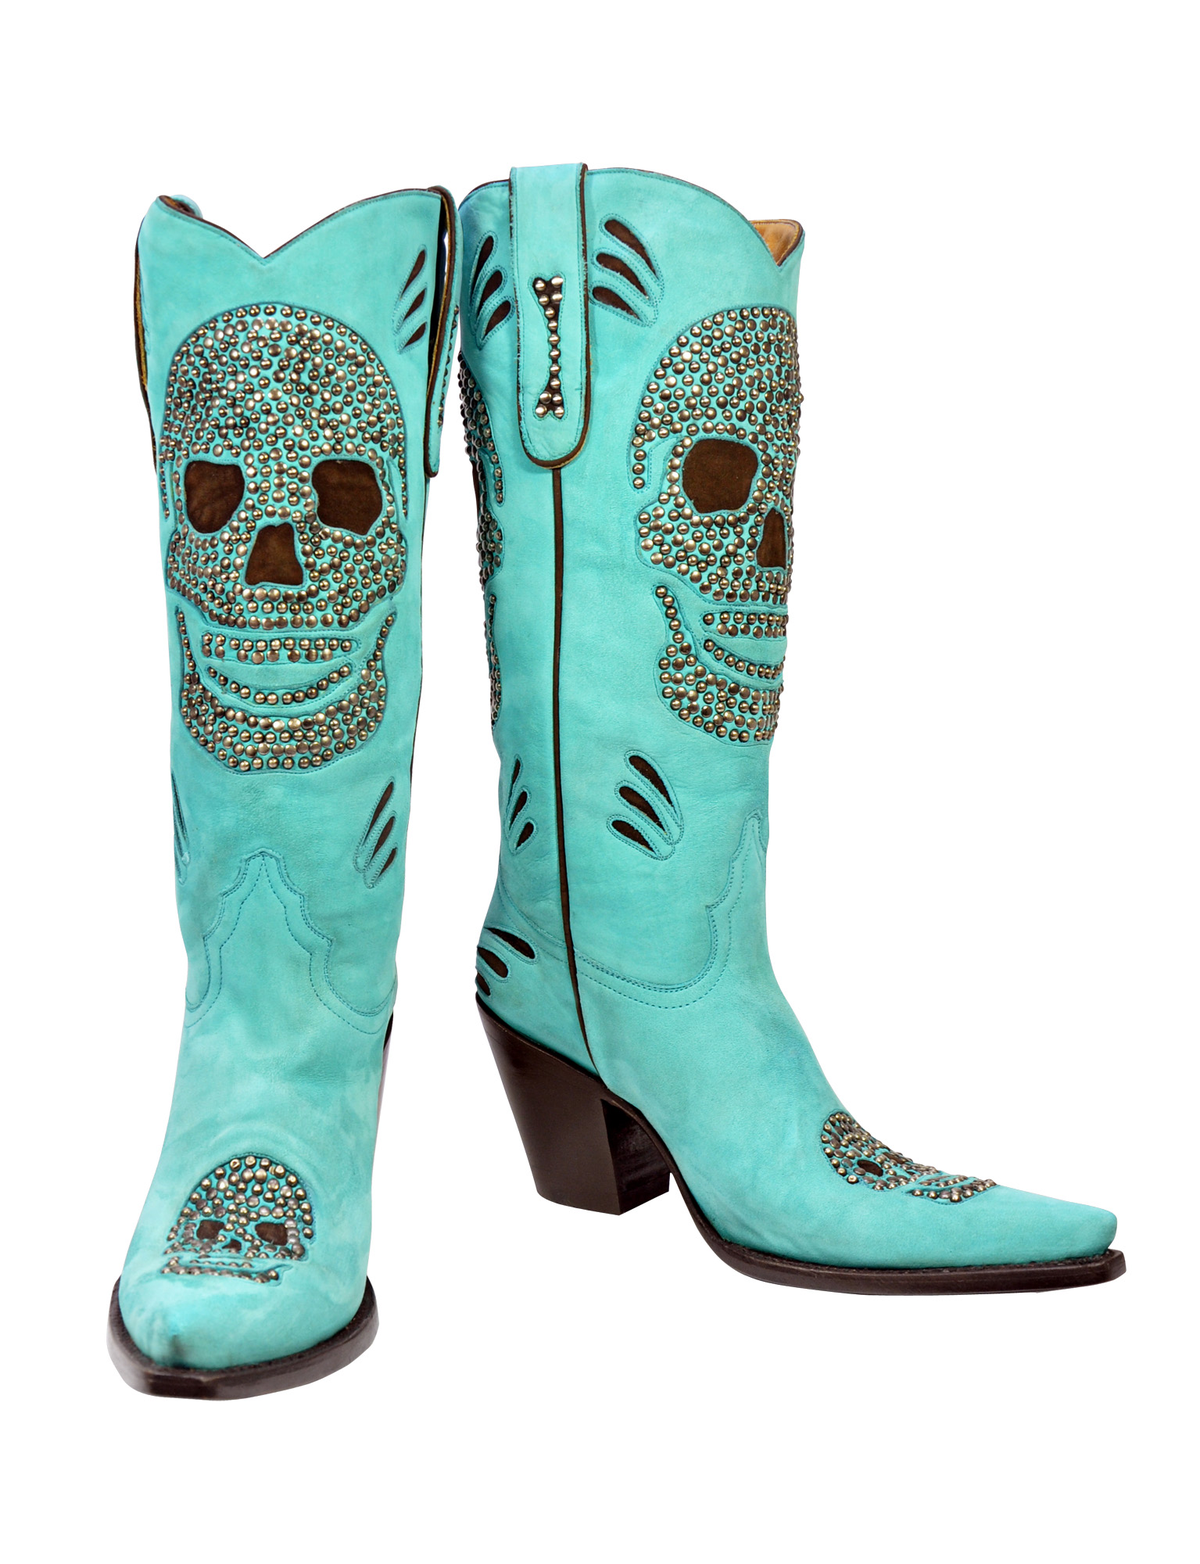 Studs Skull - Handmade Cowboy Boots from Liberty Boot Co ...